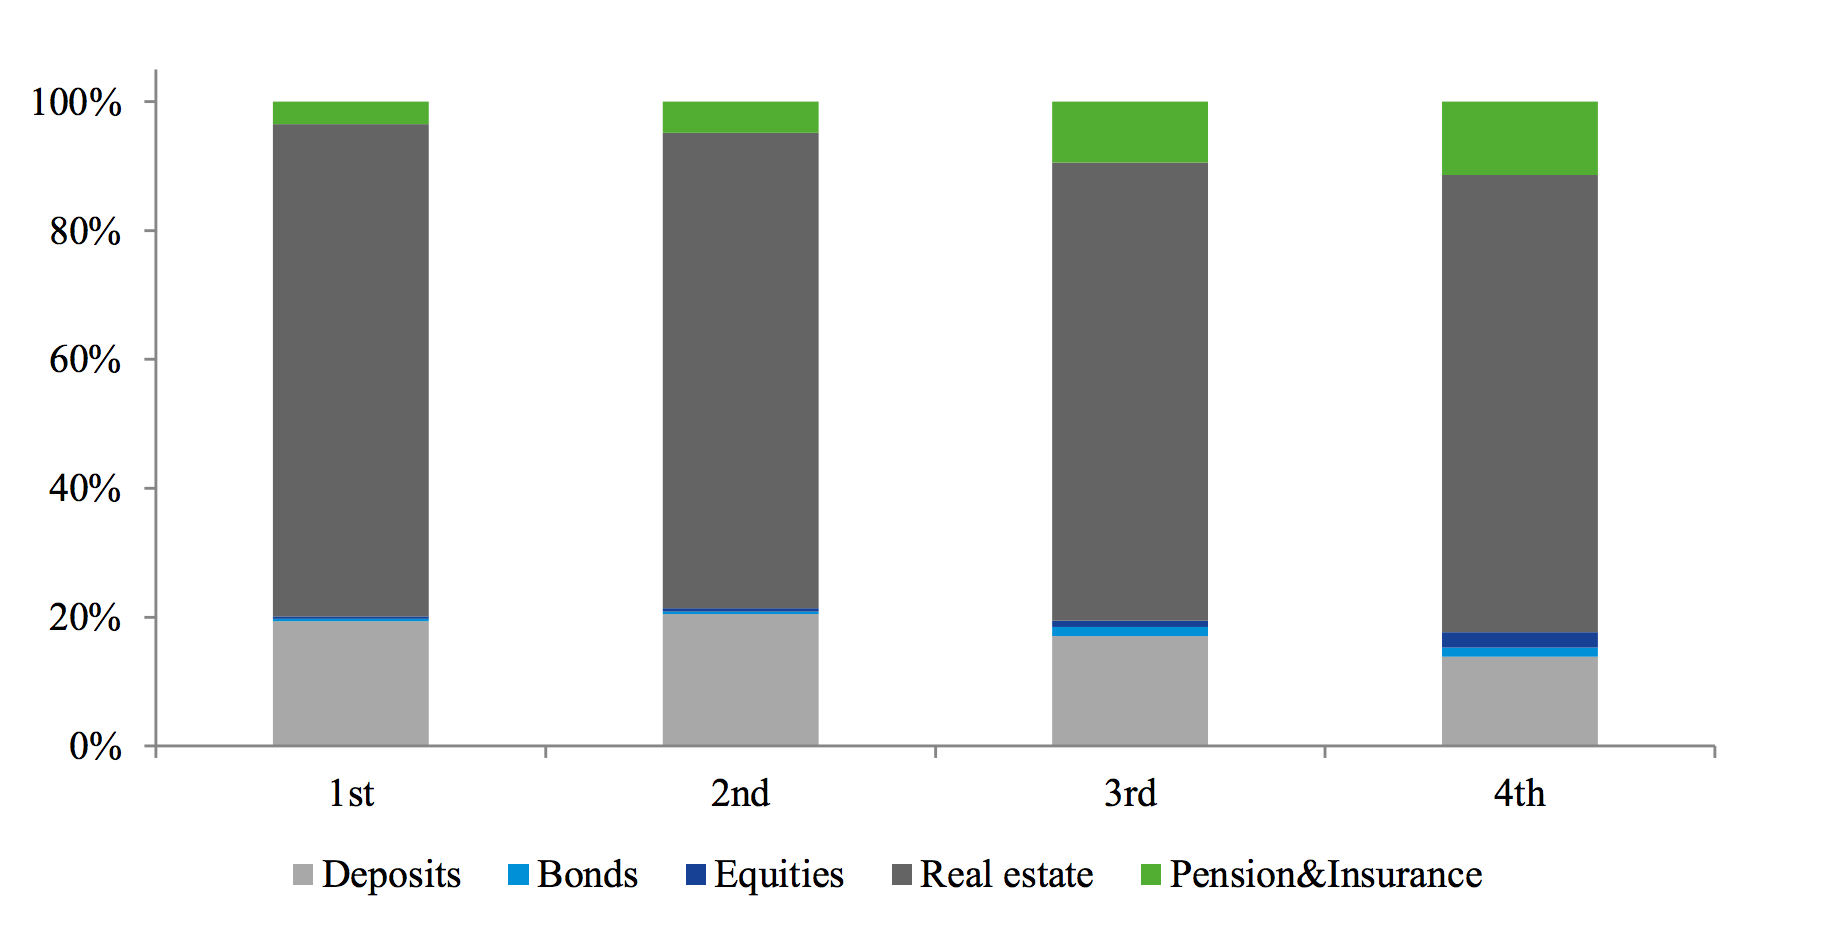 Households' portfolio weights